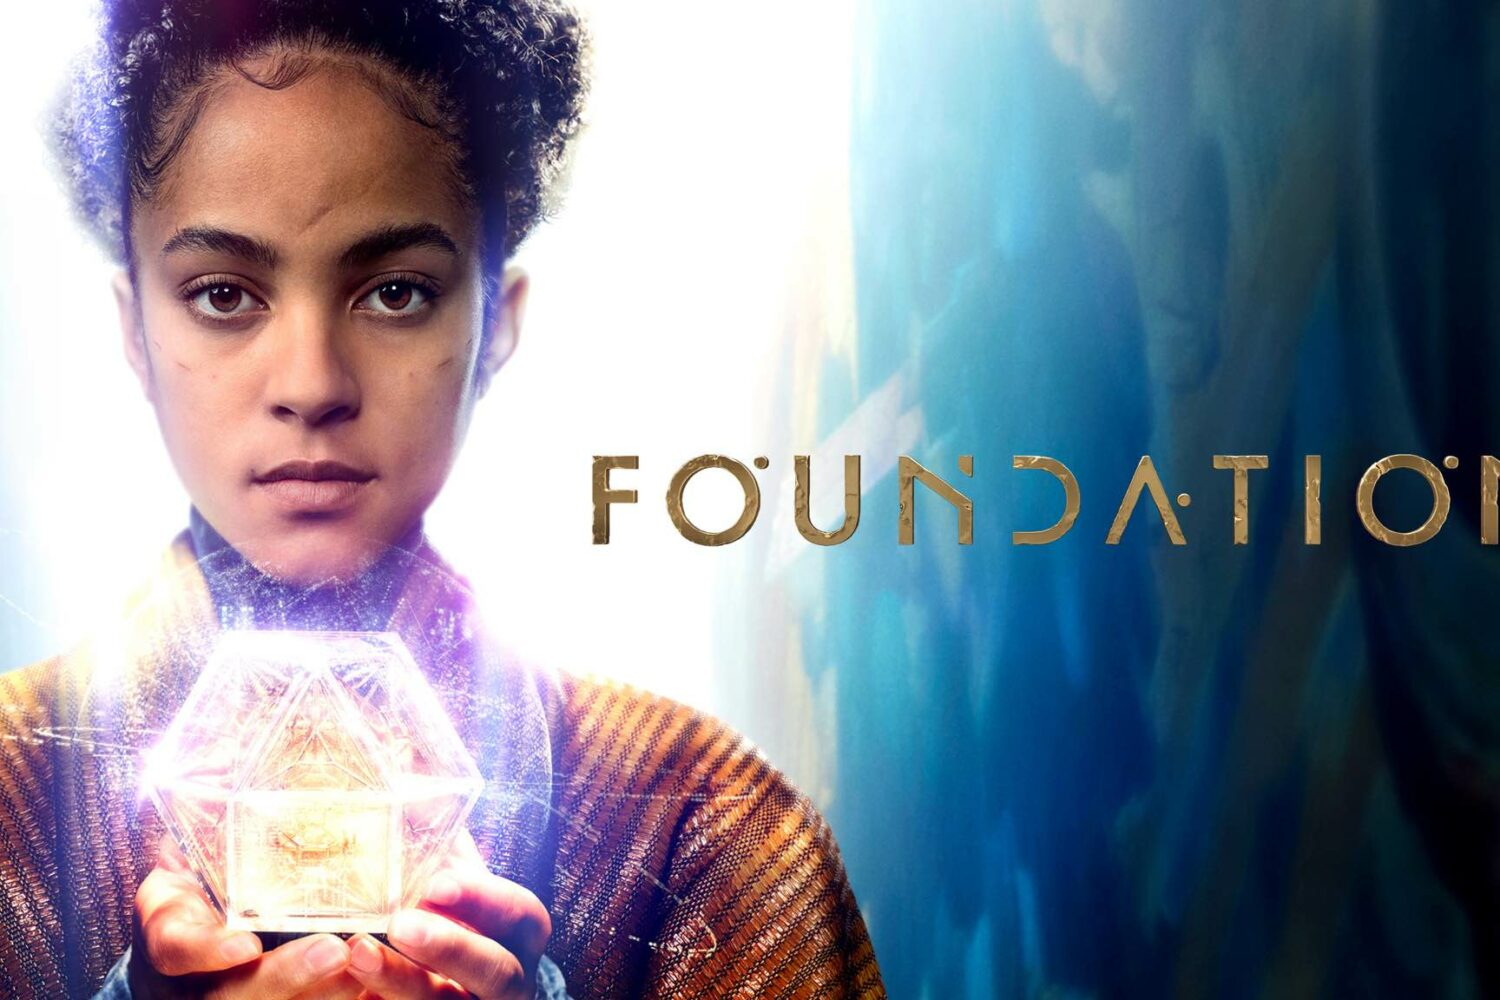 """Promotional artwork for the Apple TV+ science/fiction show """"Foundation"""" based on stories by Isaac Asimov"""